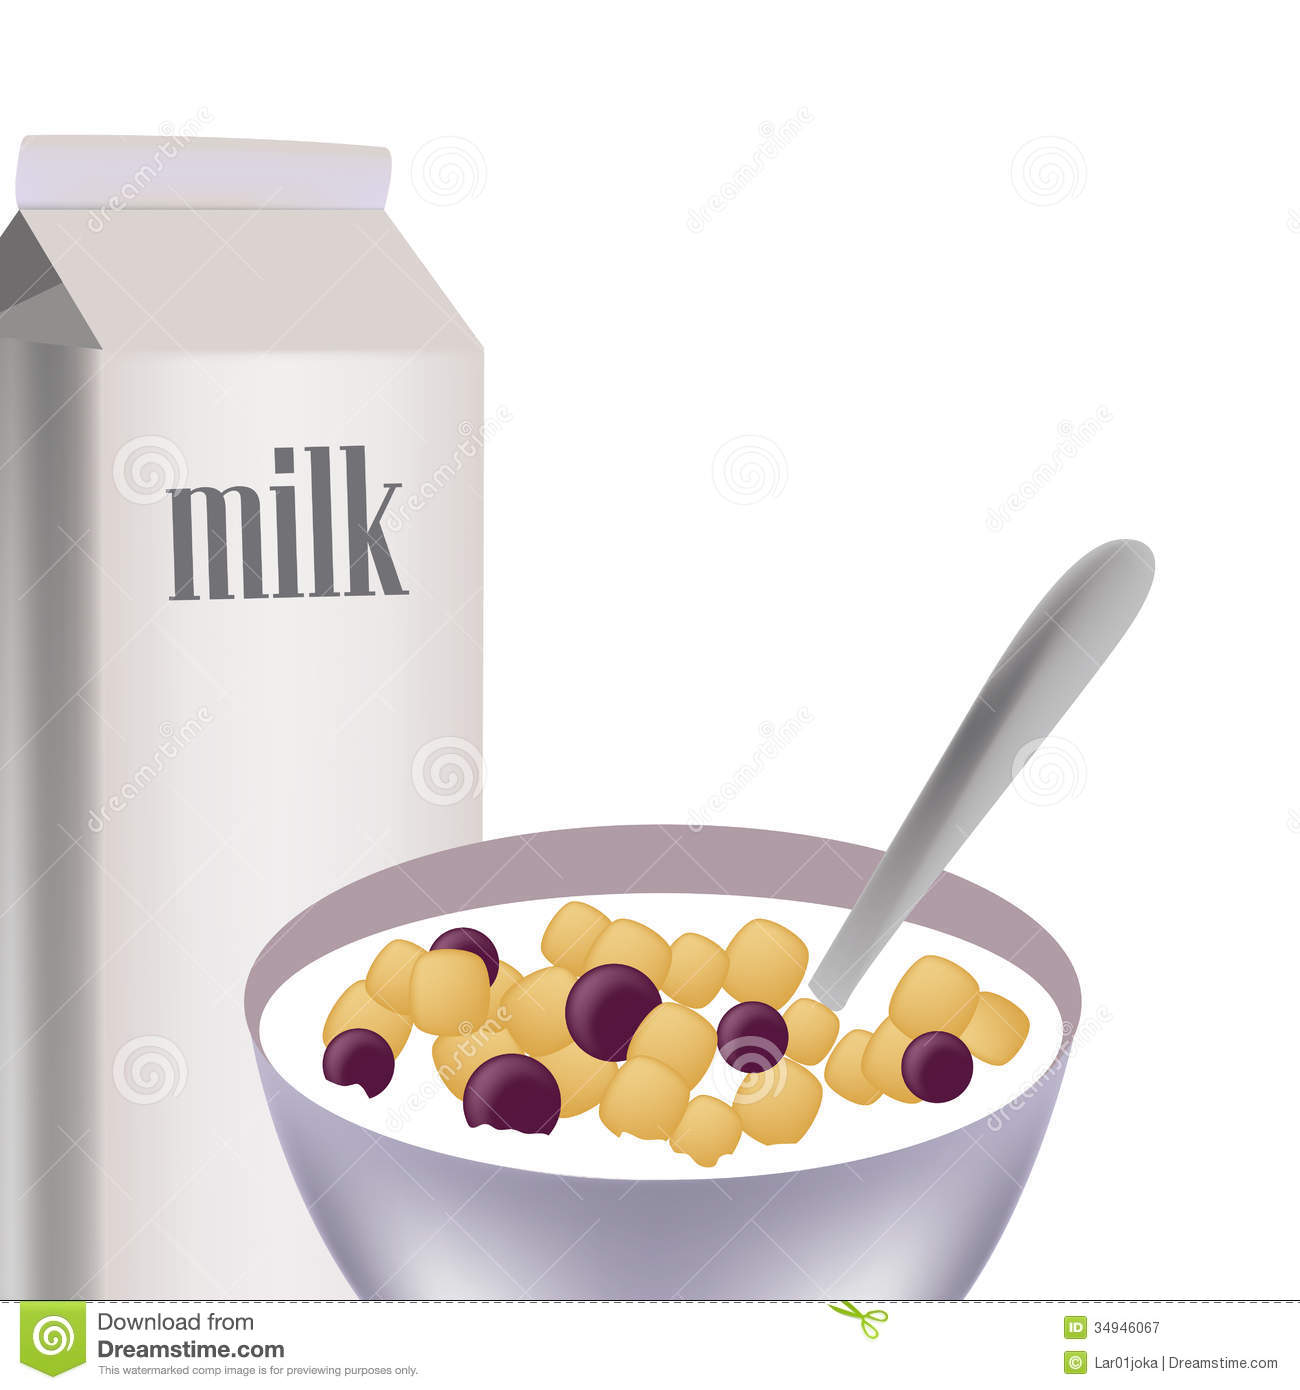 Breakfast cliparts x making. Cereal clipart breakfest